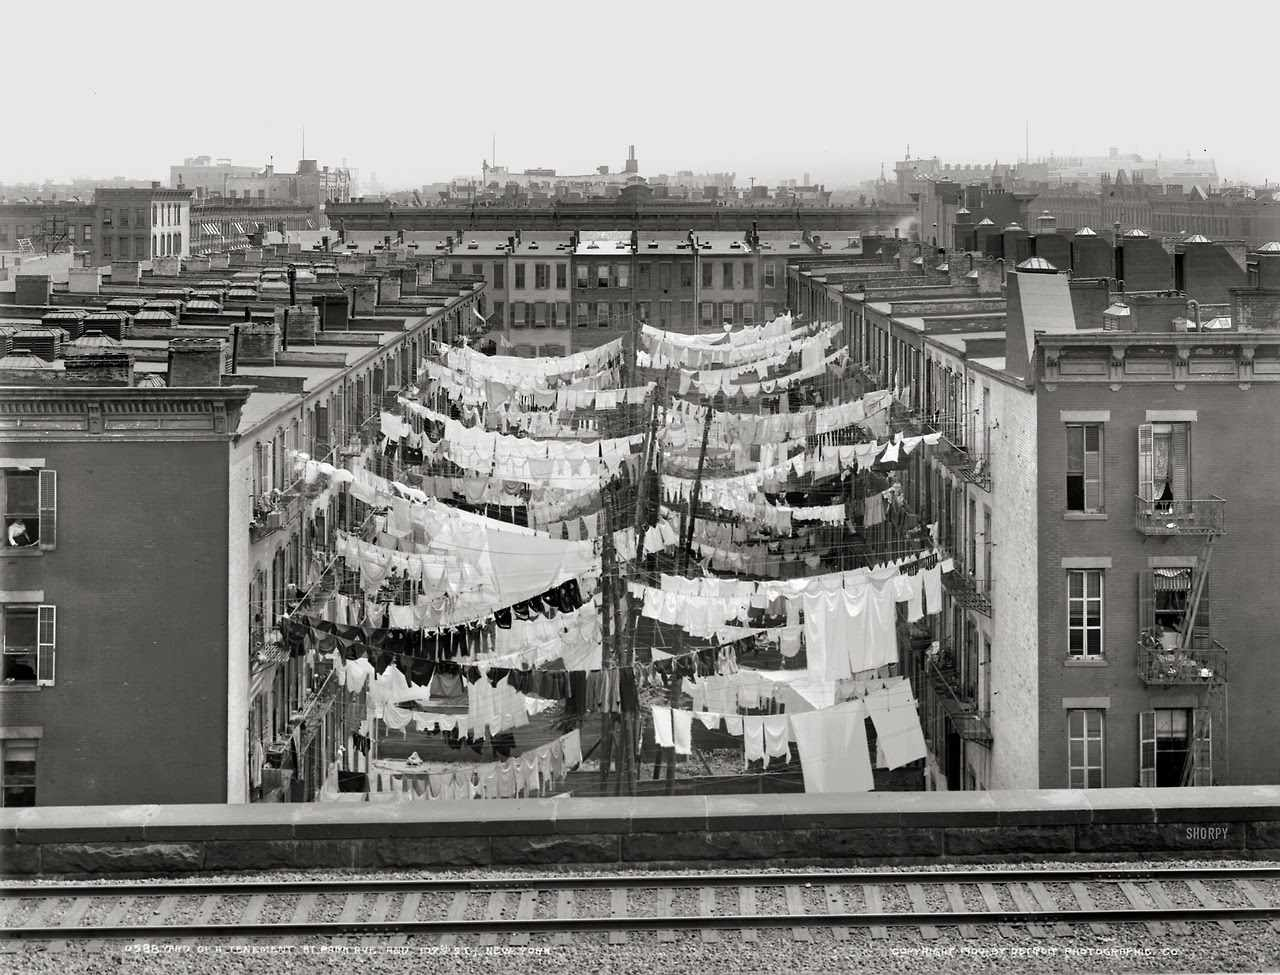 Laundry on clotheslines